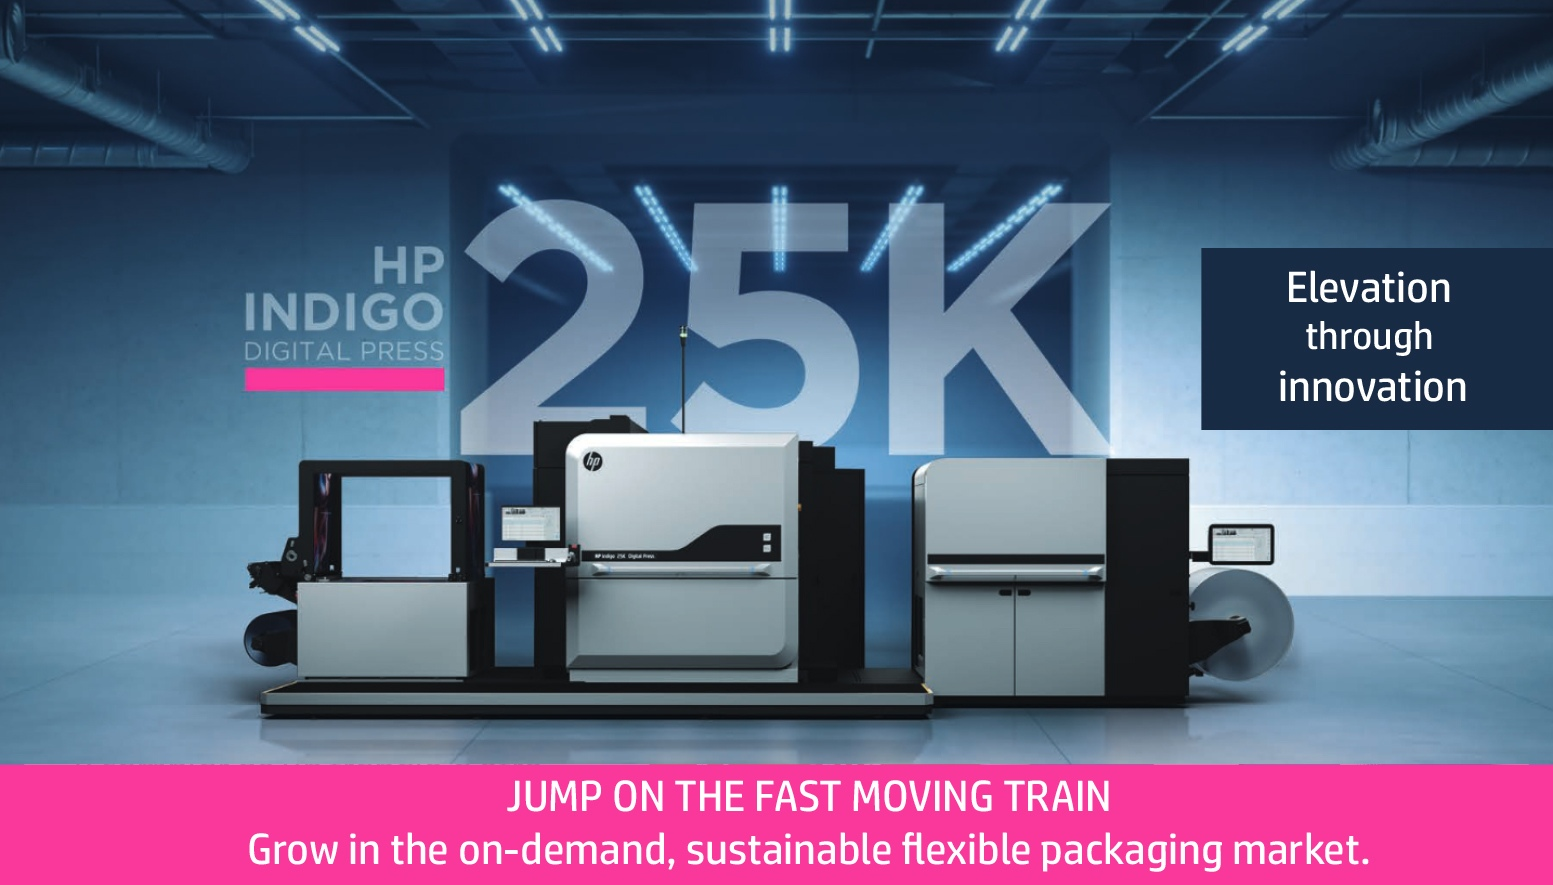 HP Indigo 25K Digital Press